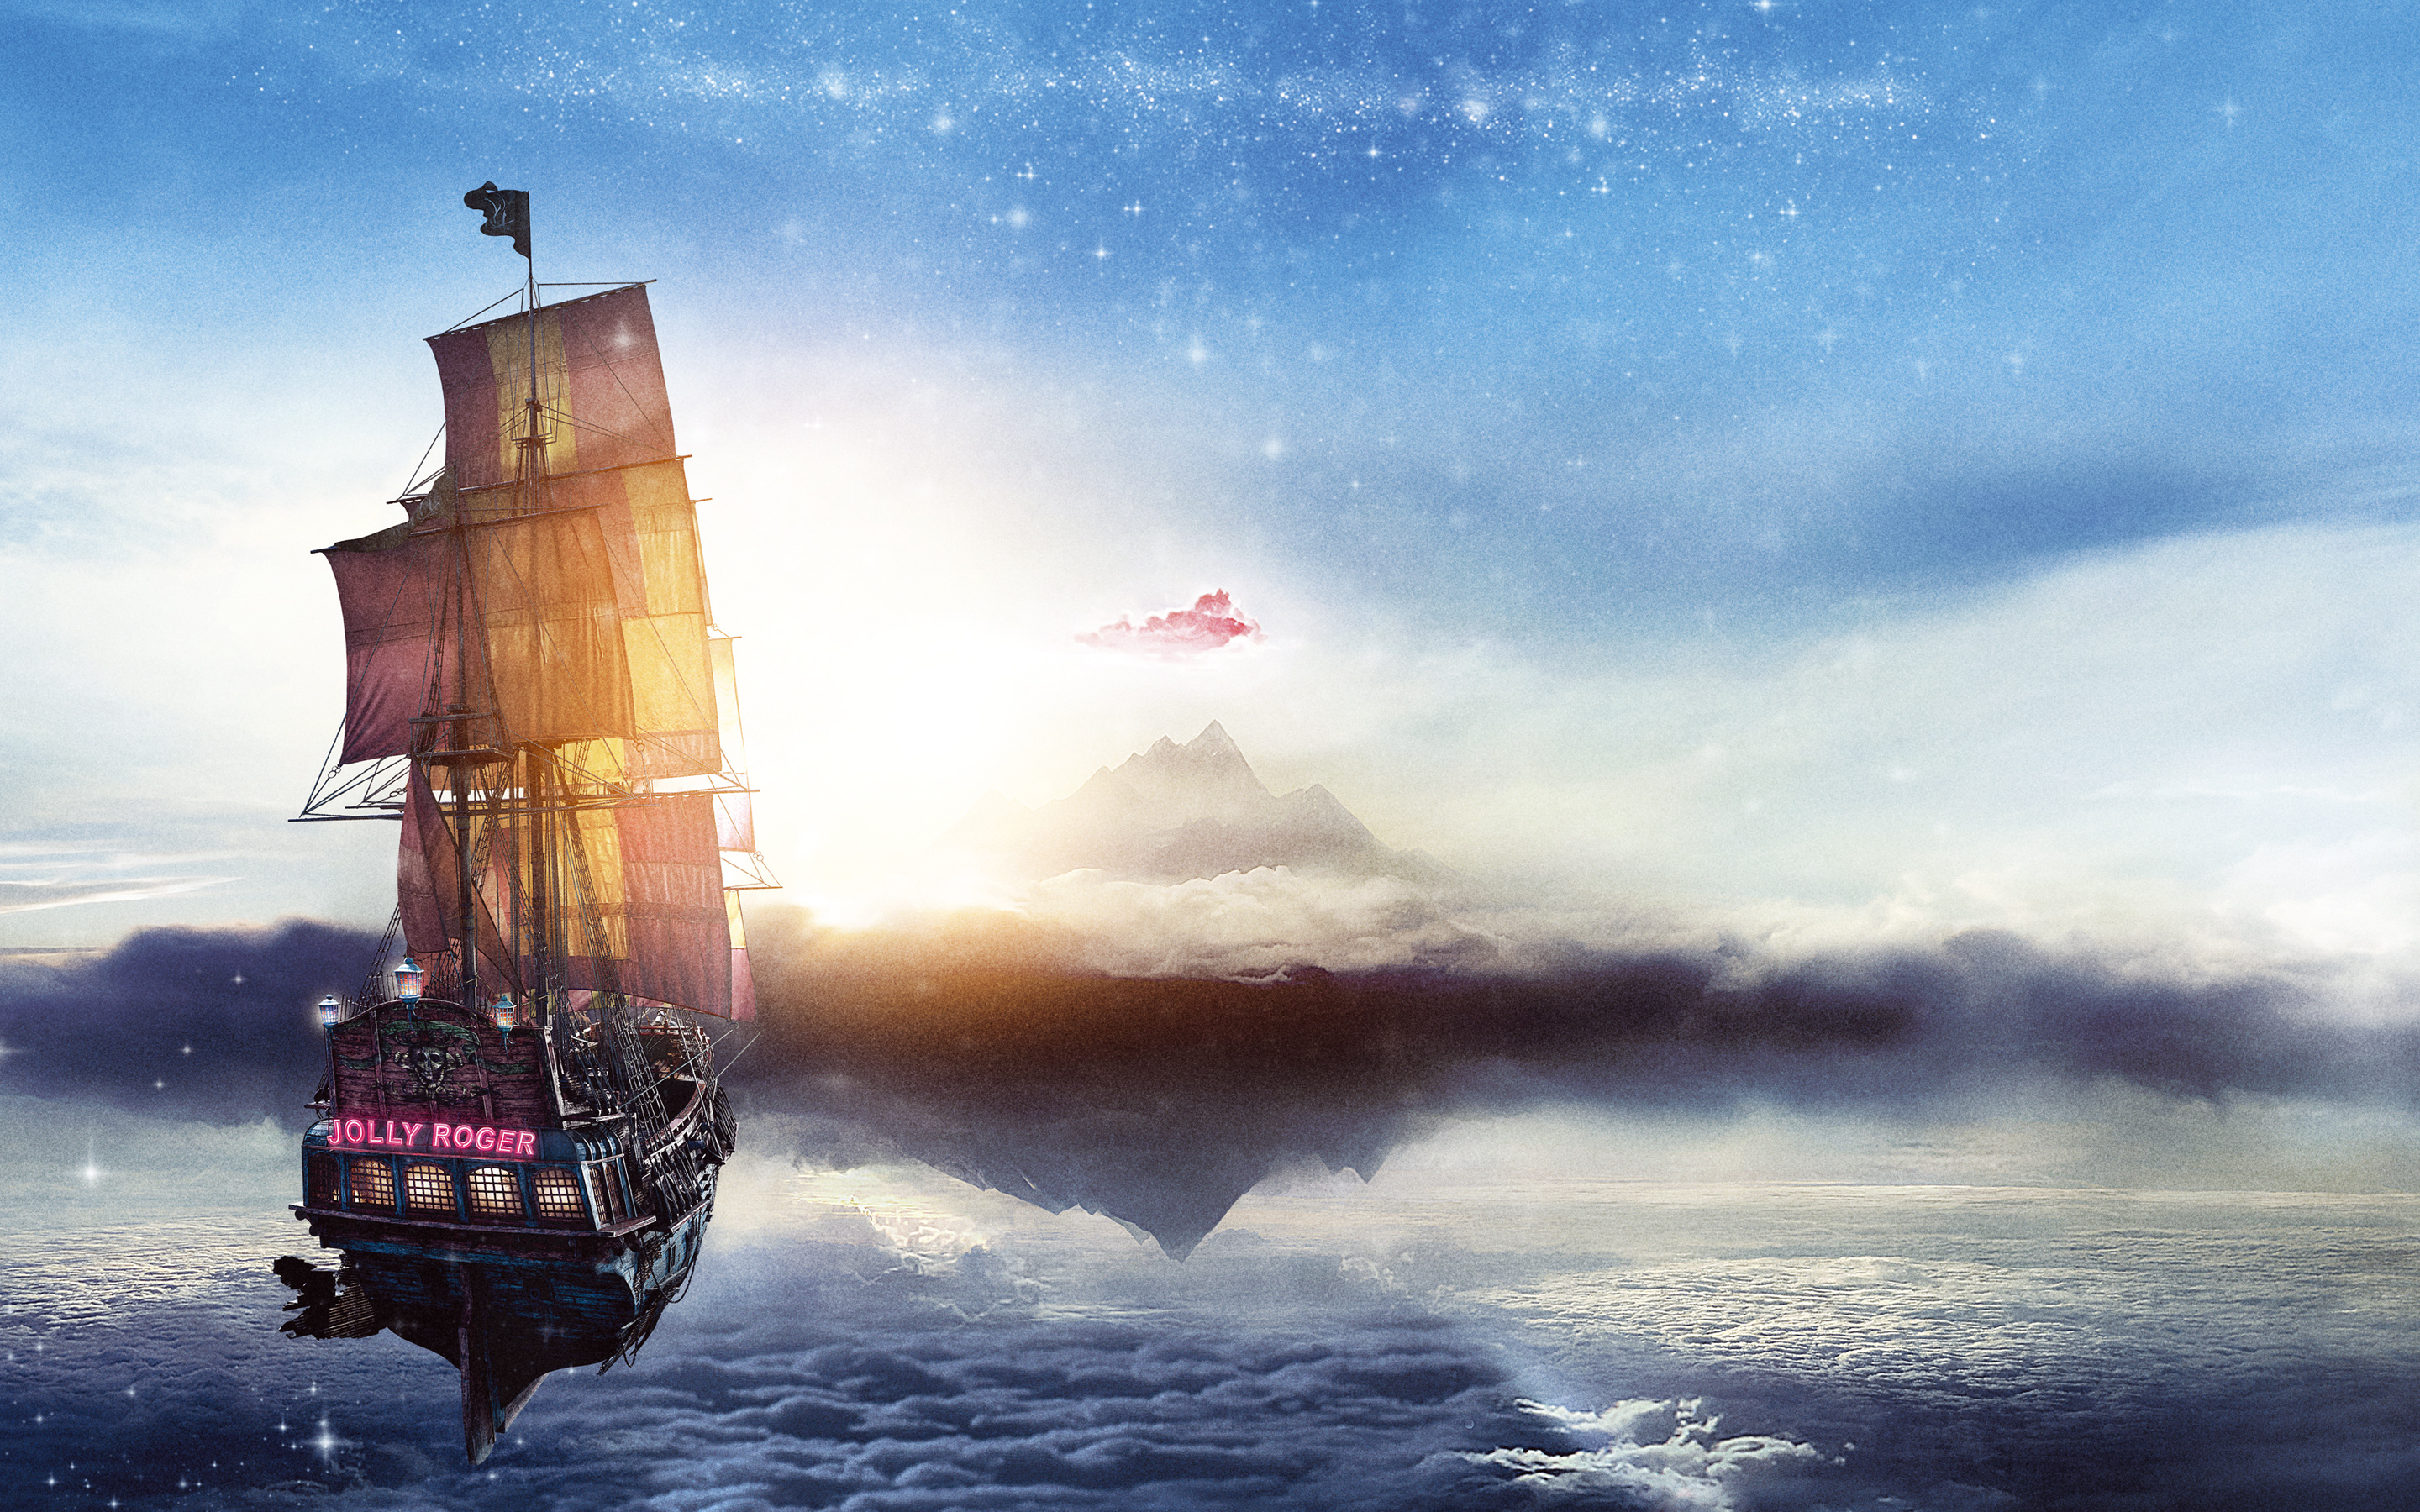 Jolly Roger Pan Pirate Ship wallpaper